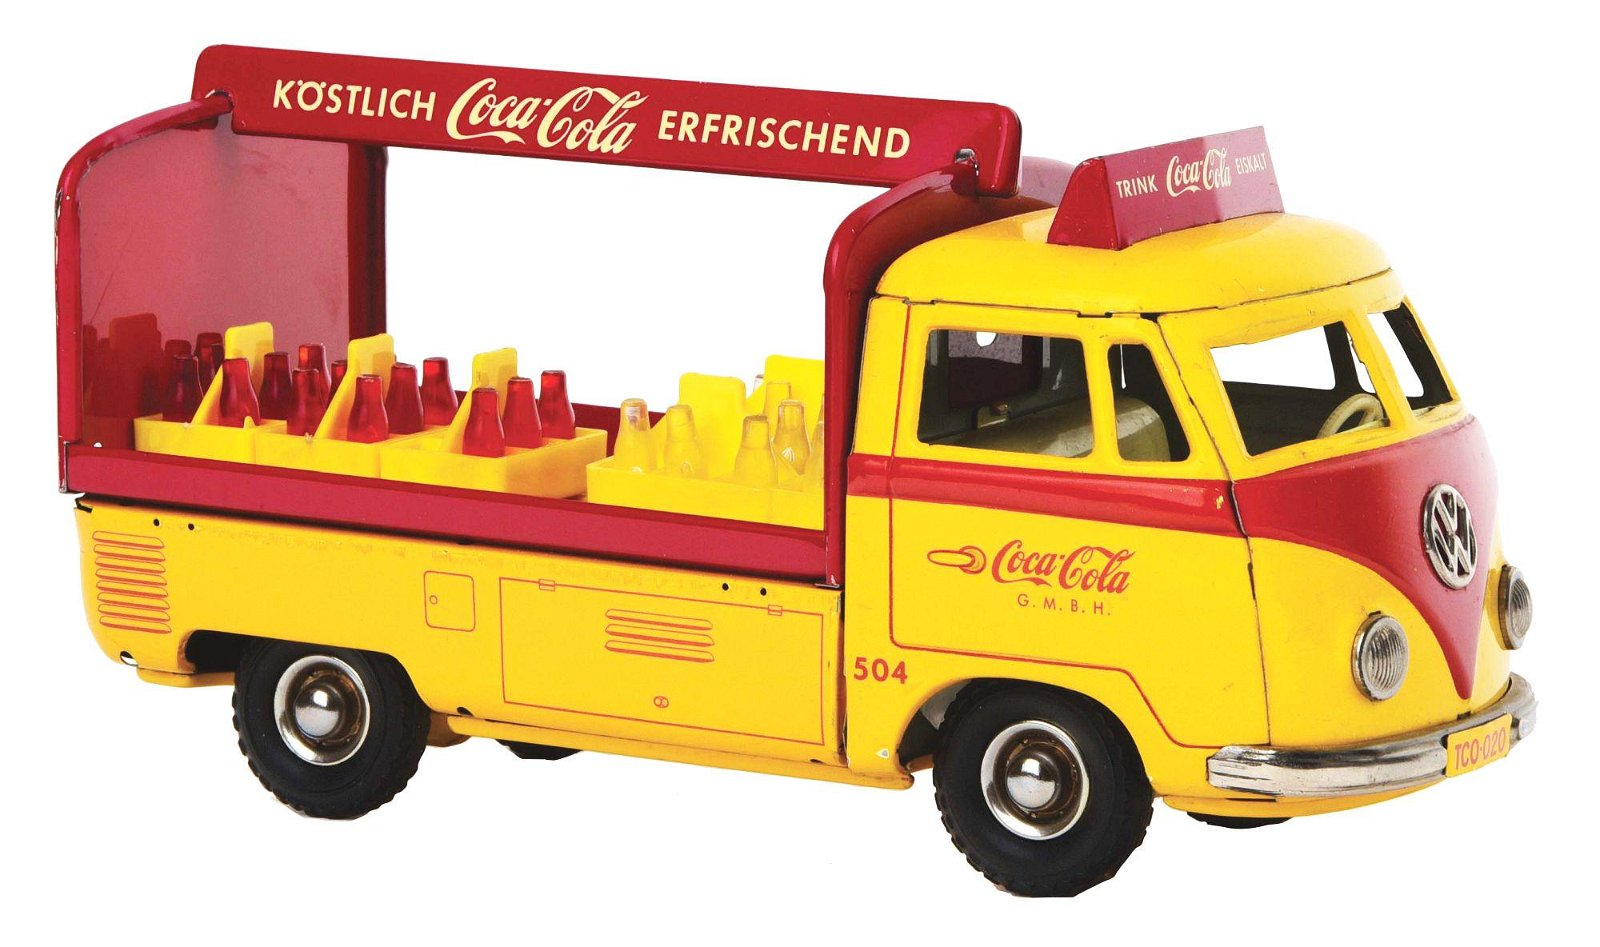 GERMAN TIN-LITHO FRICTION COCA-COLA TRUCK.